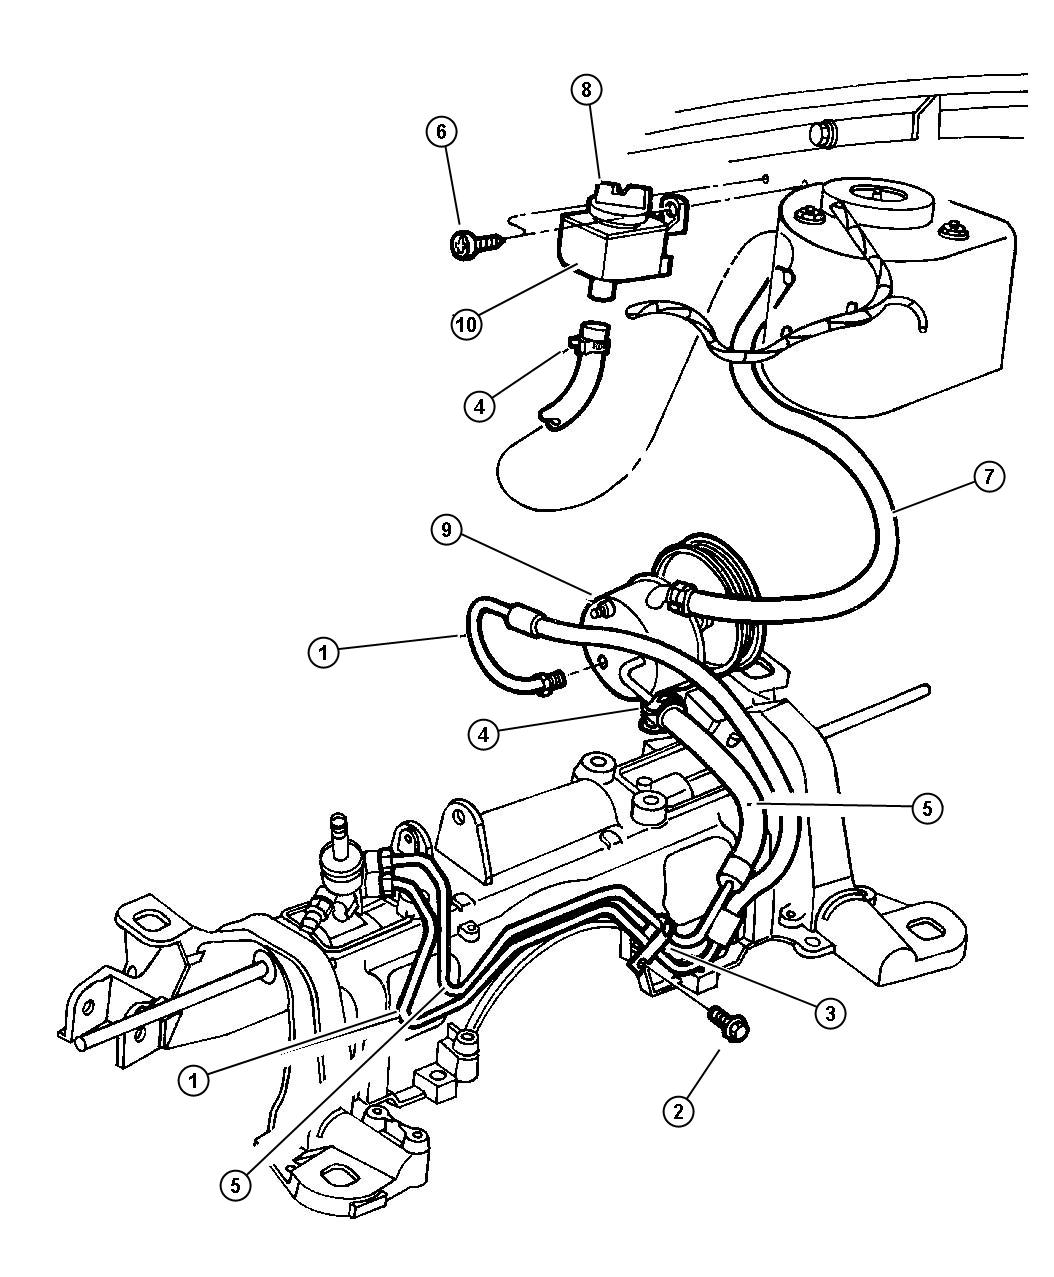 service manual  how to change a powersteering hose 1994 plymouth sundance